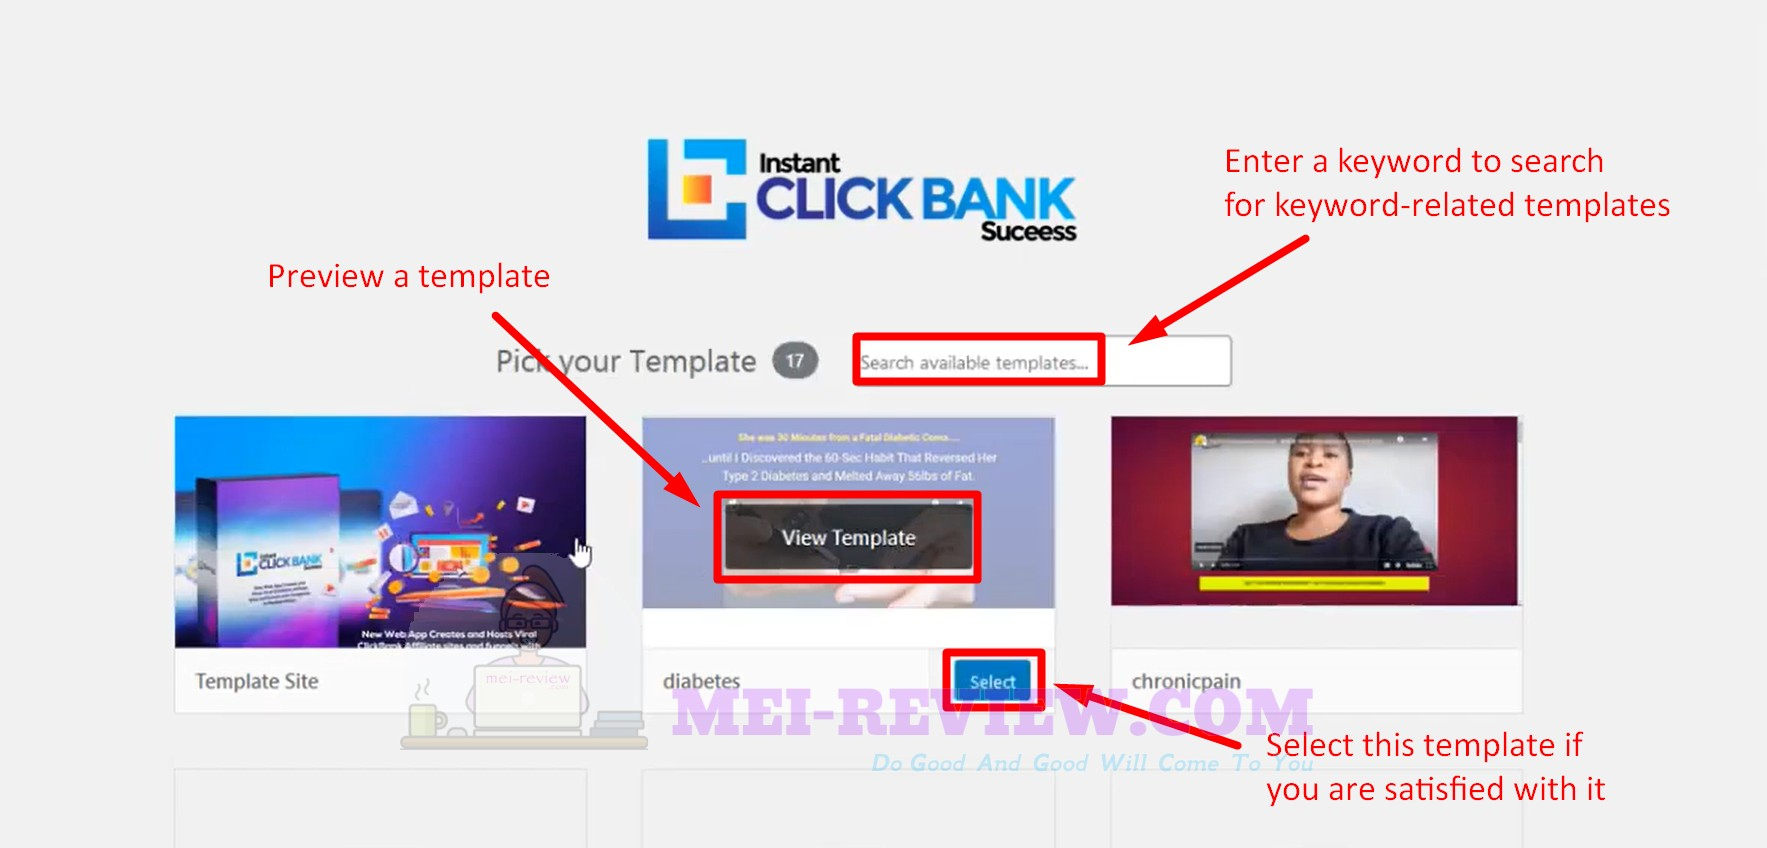 Instant-Clickbank-Success-Demo-3